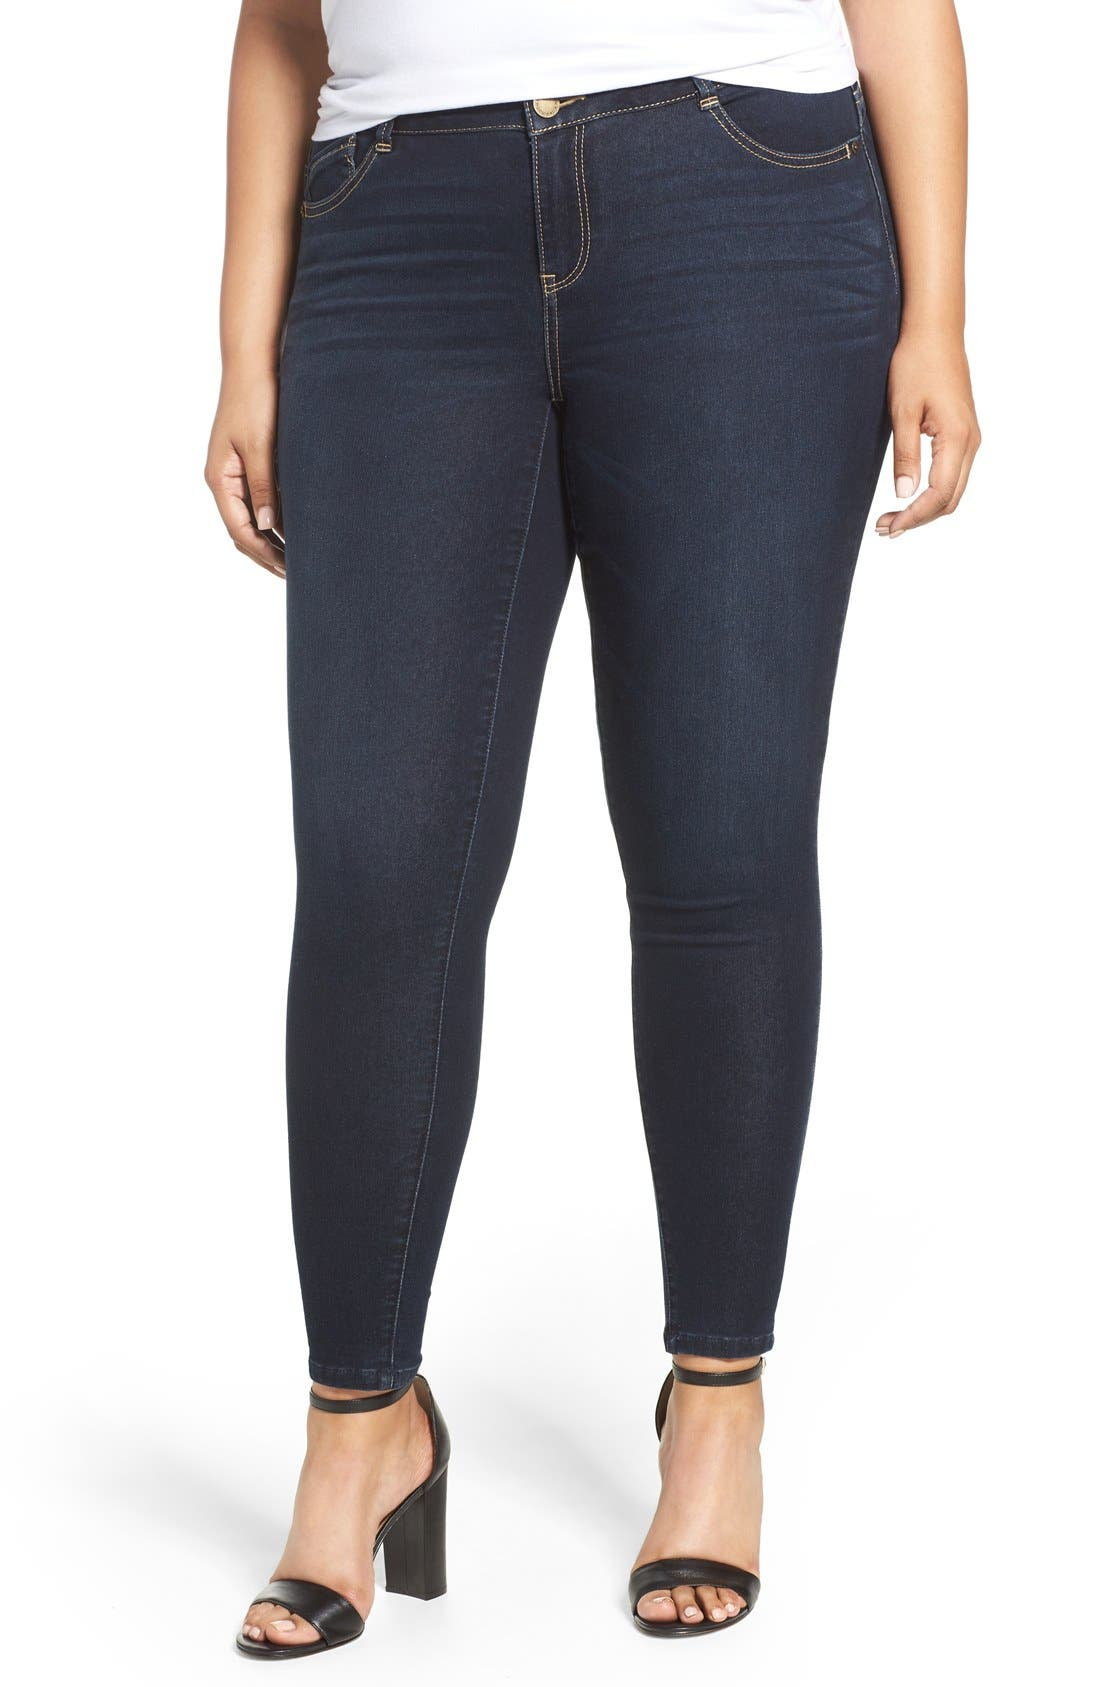 Main Image - Wit & Wisdom Stretch Skinny Jeans (Plus Size) (Nordstrom Exclusive)